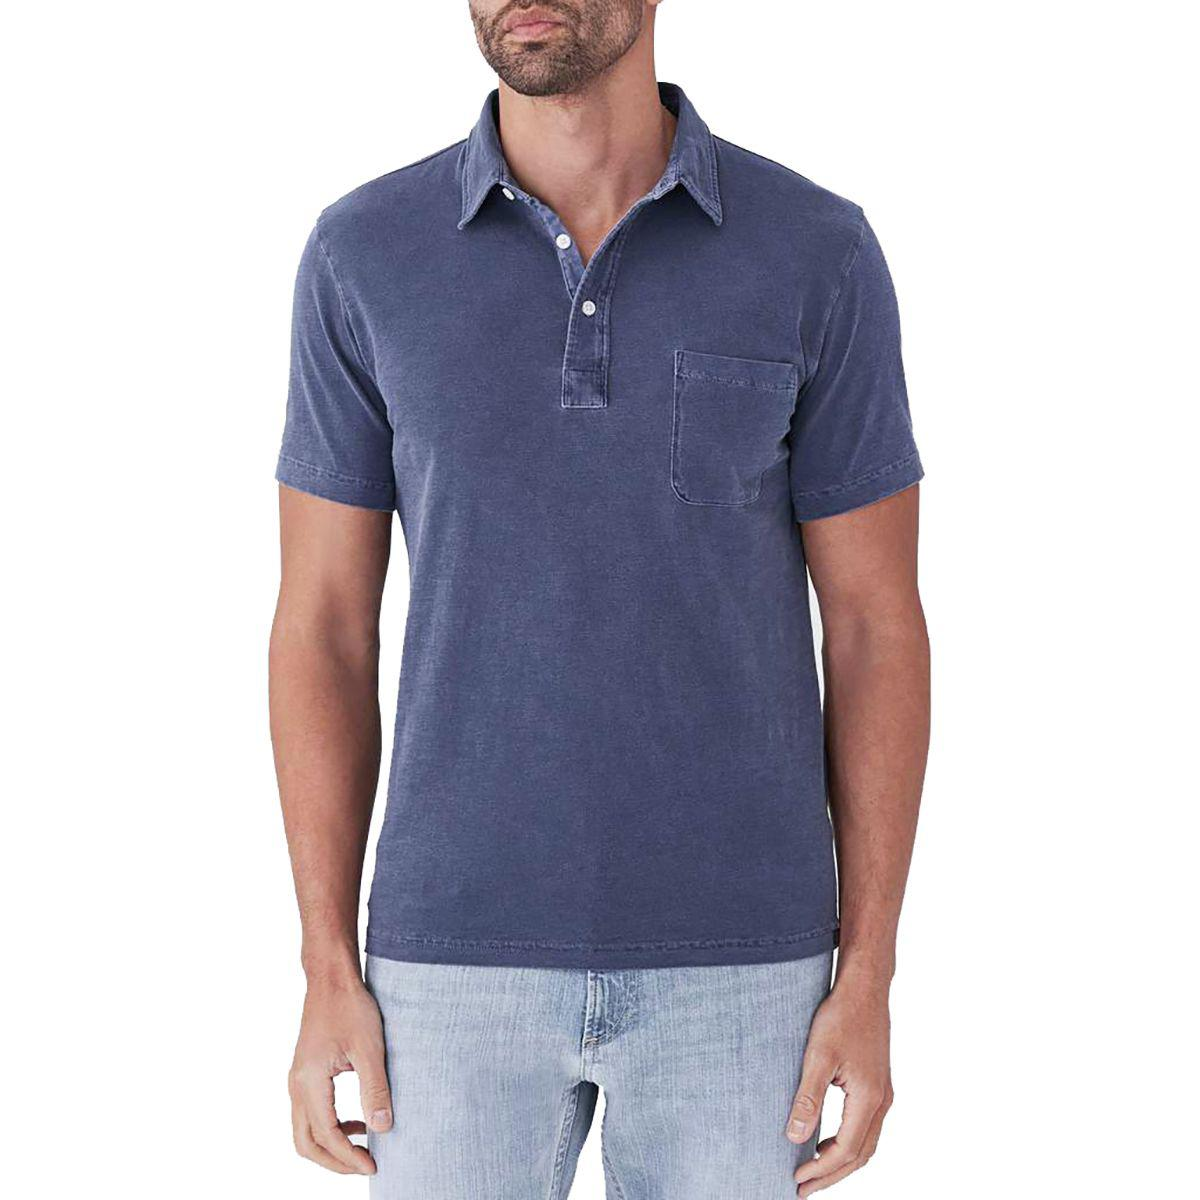 1f3a0ecb57d2 Lyst - Faherty Brand Sunwashed Polo Shirt in Blue for Men - Save 1%